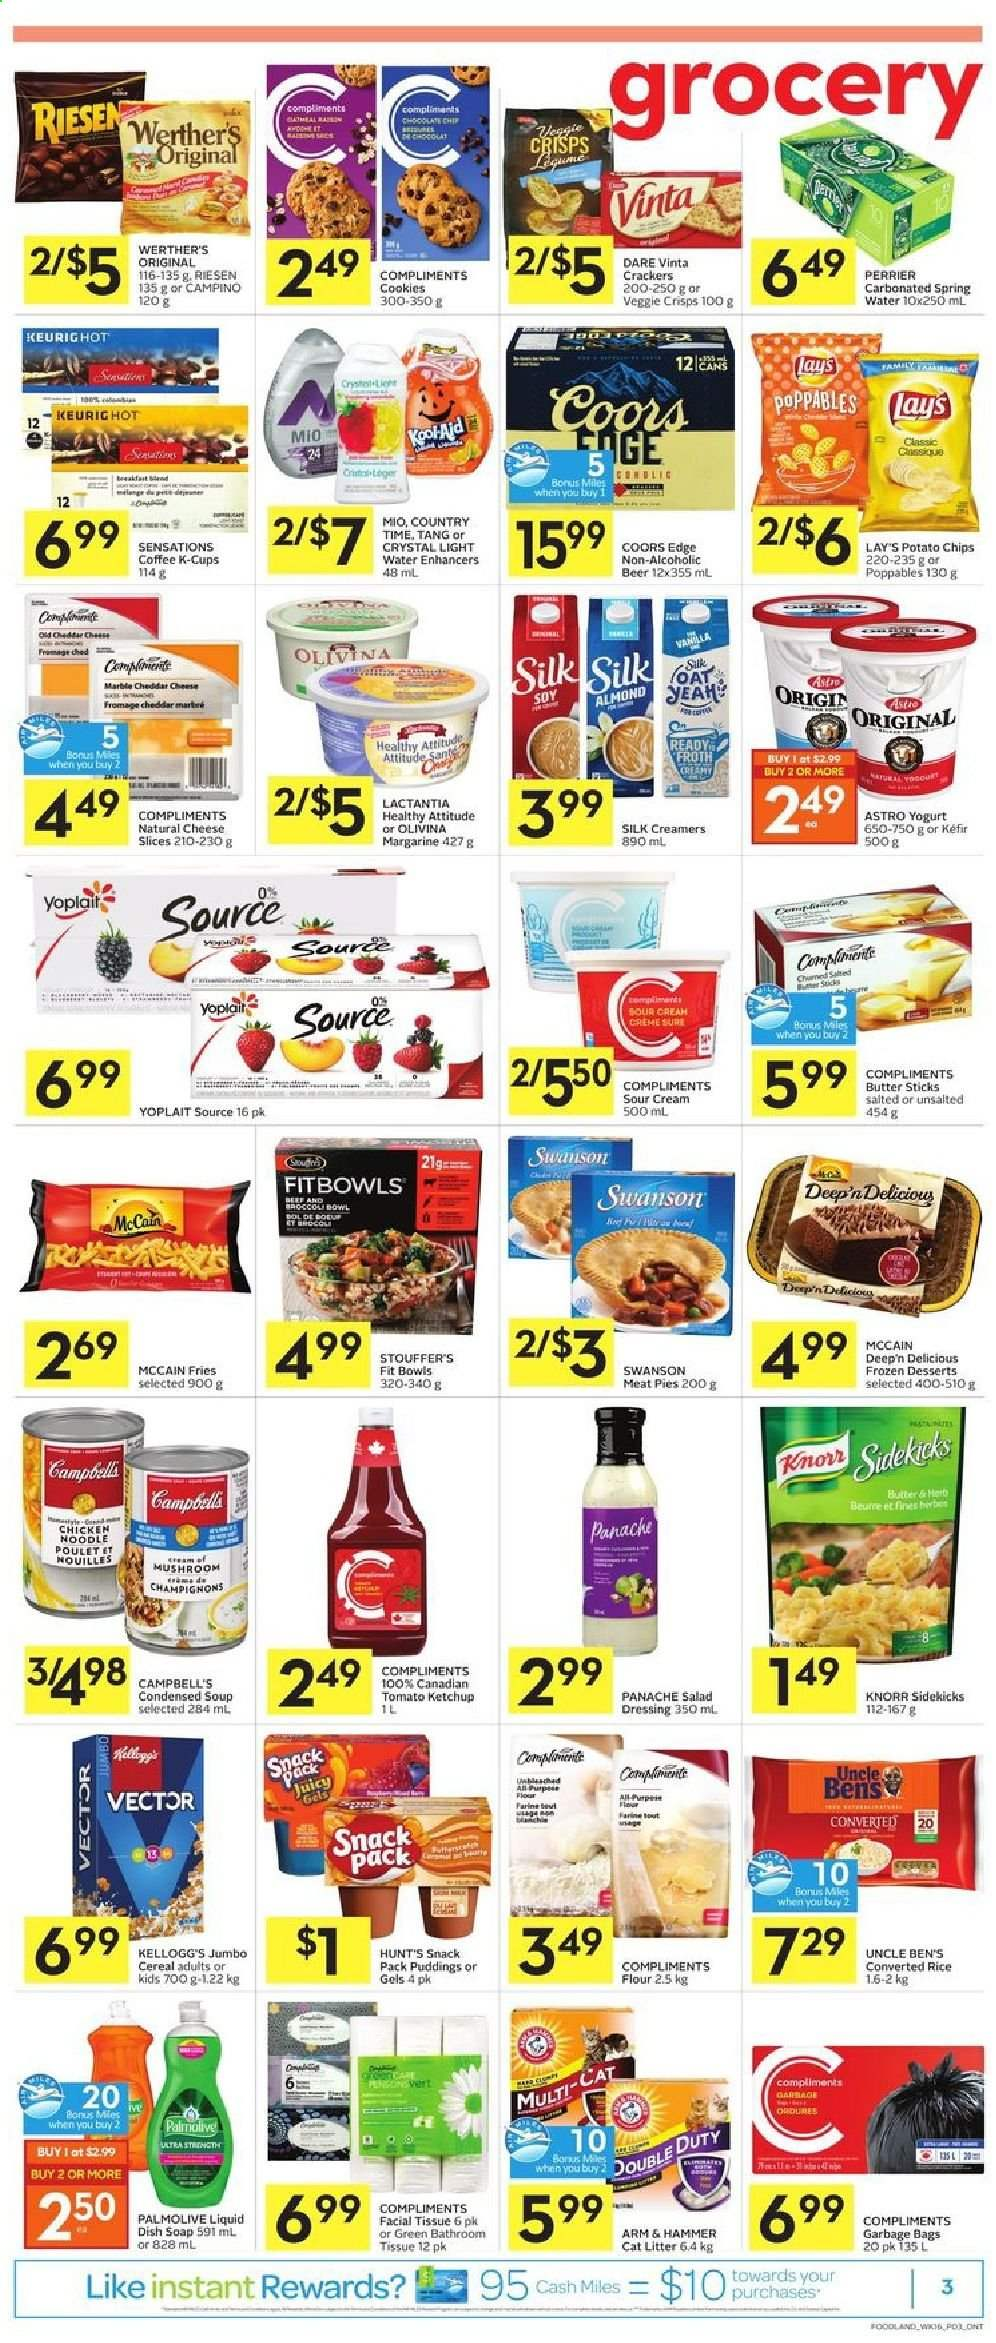 Foodland Flyer - August 13, 2020 - August 19, 2020 - Sales products - arm & hammer, bag, beer, bowl, butter, campbell's, cat litter, cereals, coffee, cookies, crackers, cream, flour, litter, margarine, mccain, rice, salad dressing, sour cream, spring water, veggie, yogurt, ketchup, potato chips, cheddar, cheese slices, chicken, noodle, chips, cheese, dressing, condensed soup, soup, mushroom, snack, hammer, cereal, lay's, knorr, salad, poulet, beurre, farine, fromage, kellogg's, marble, nouilles, palmolive, perrier. Page 5.